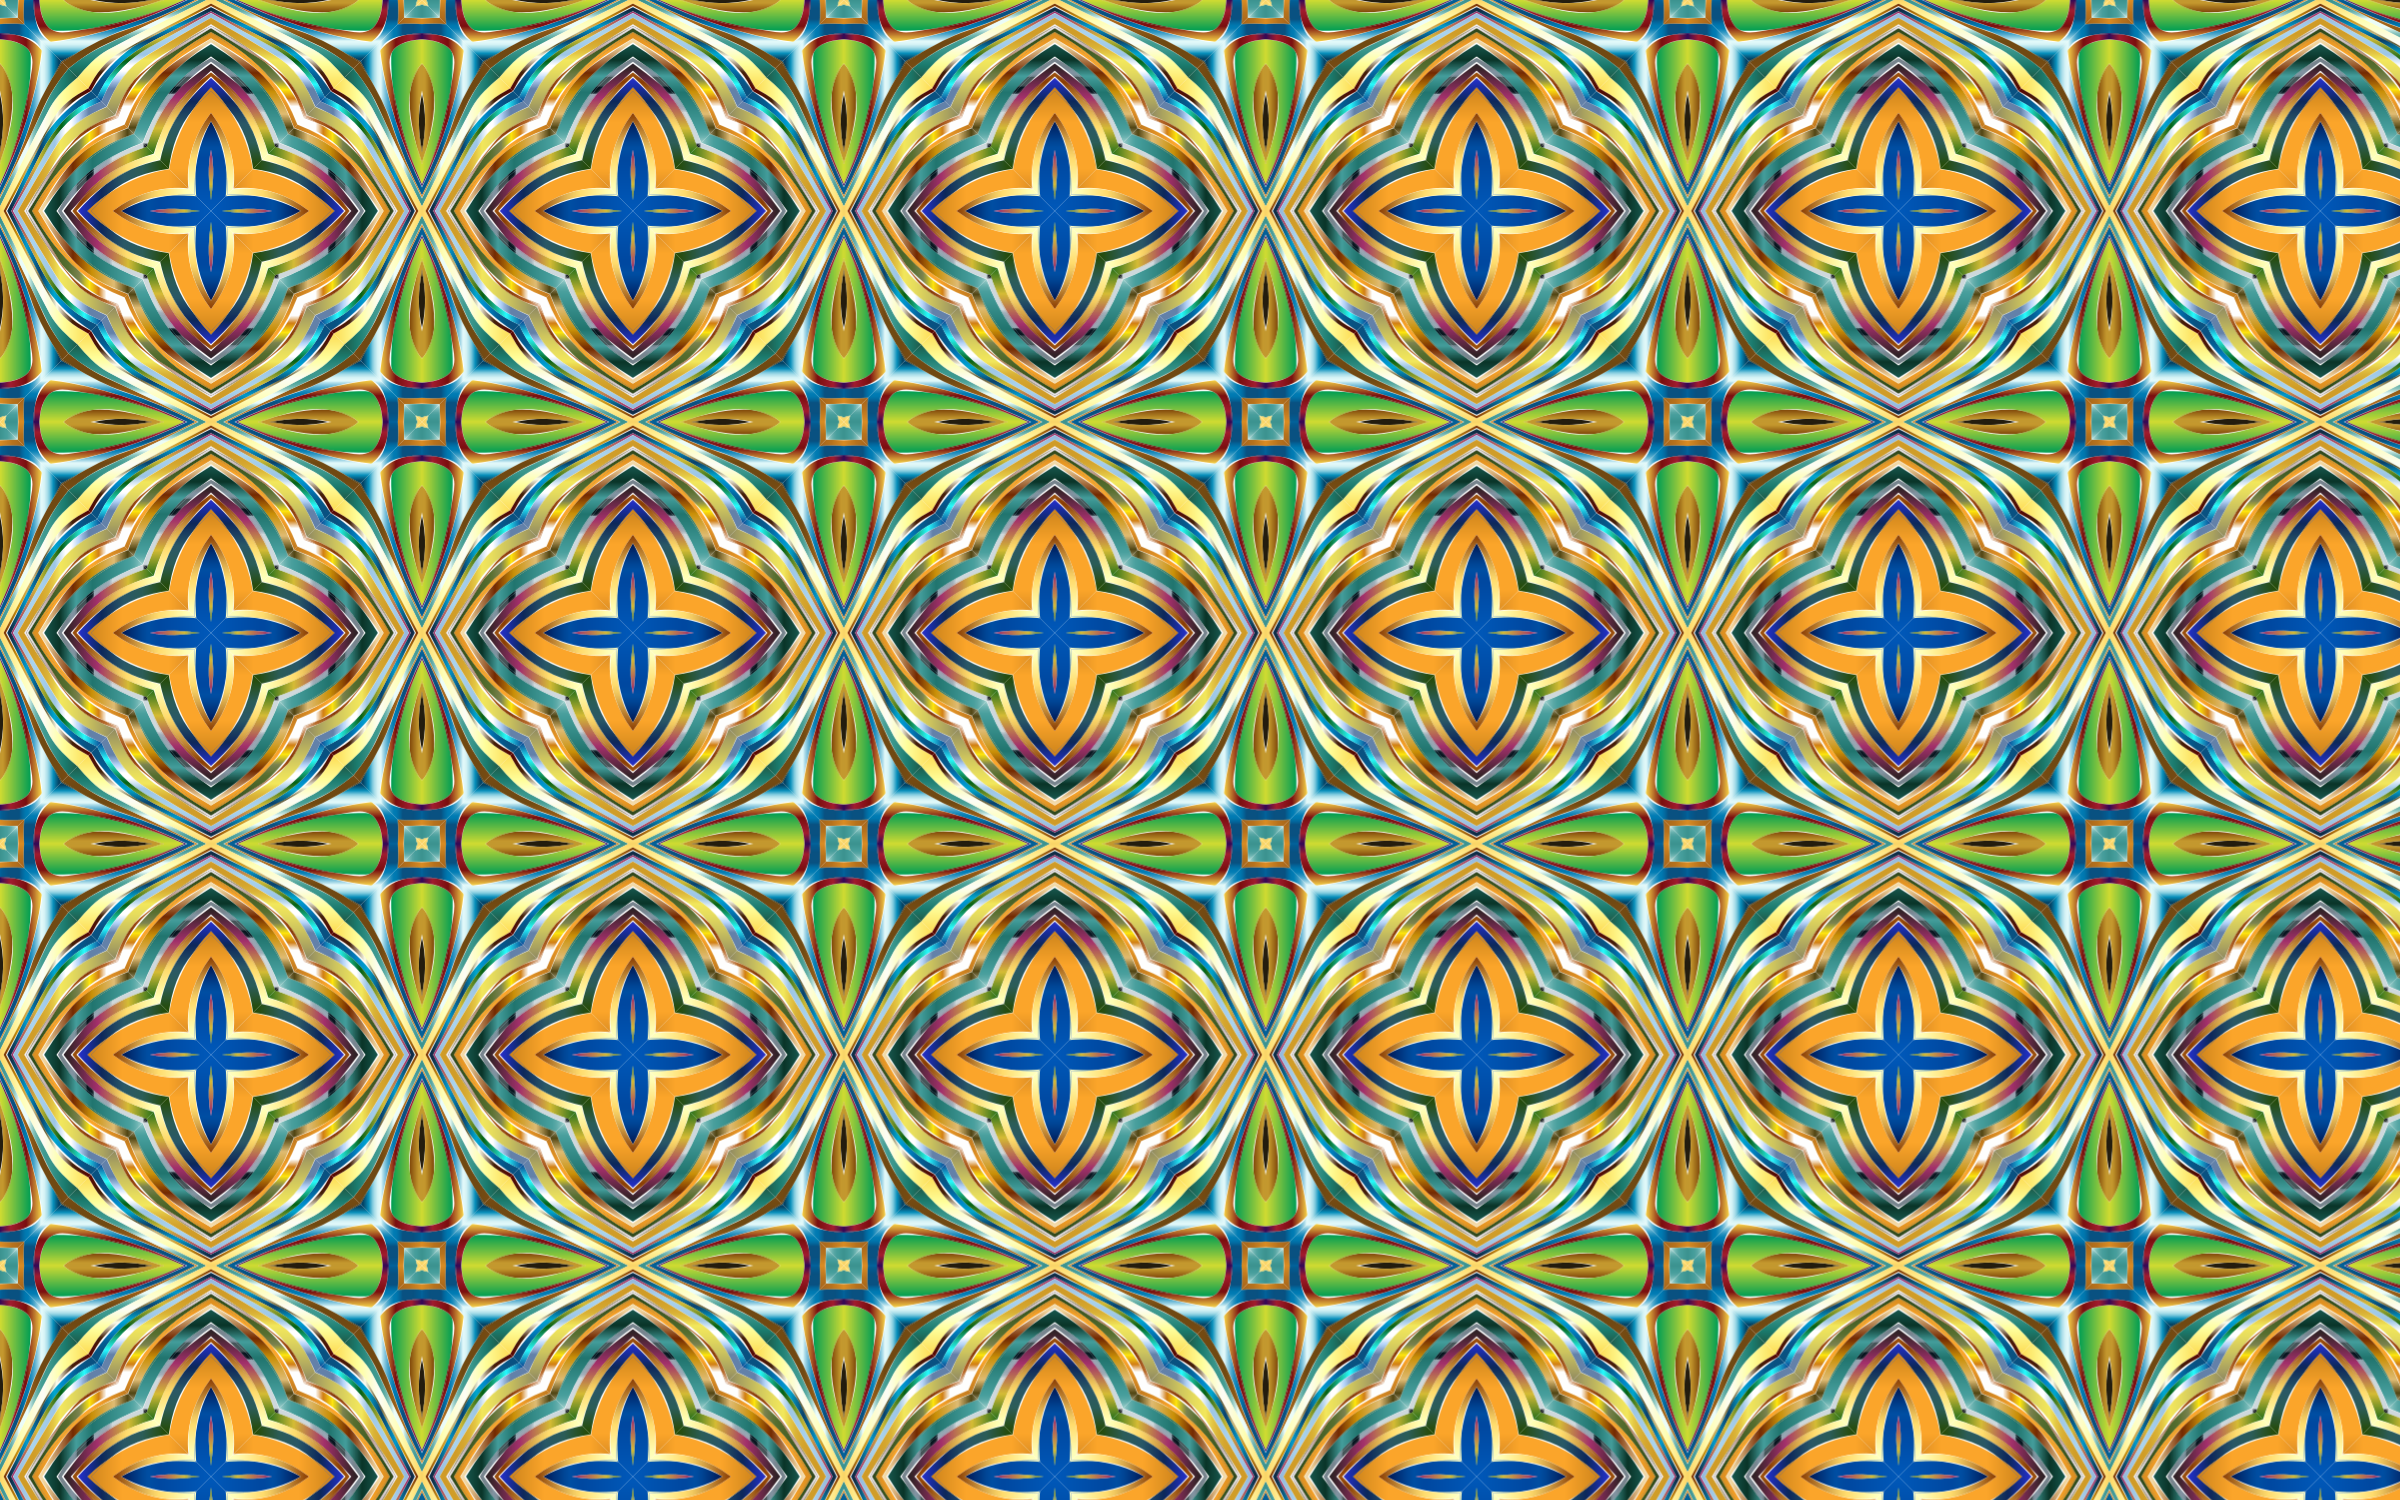 Seamless Pattern 62 by GDJ